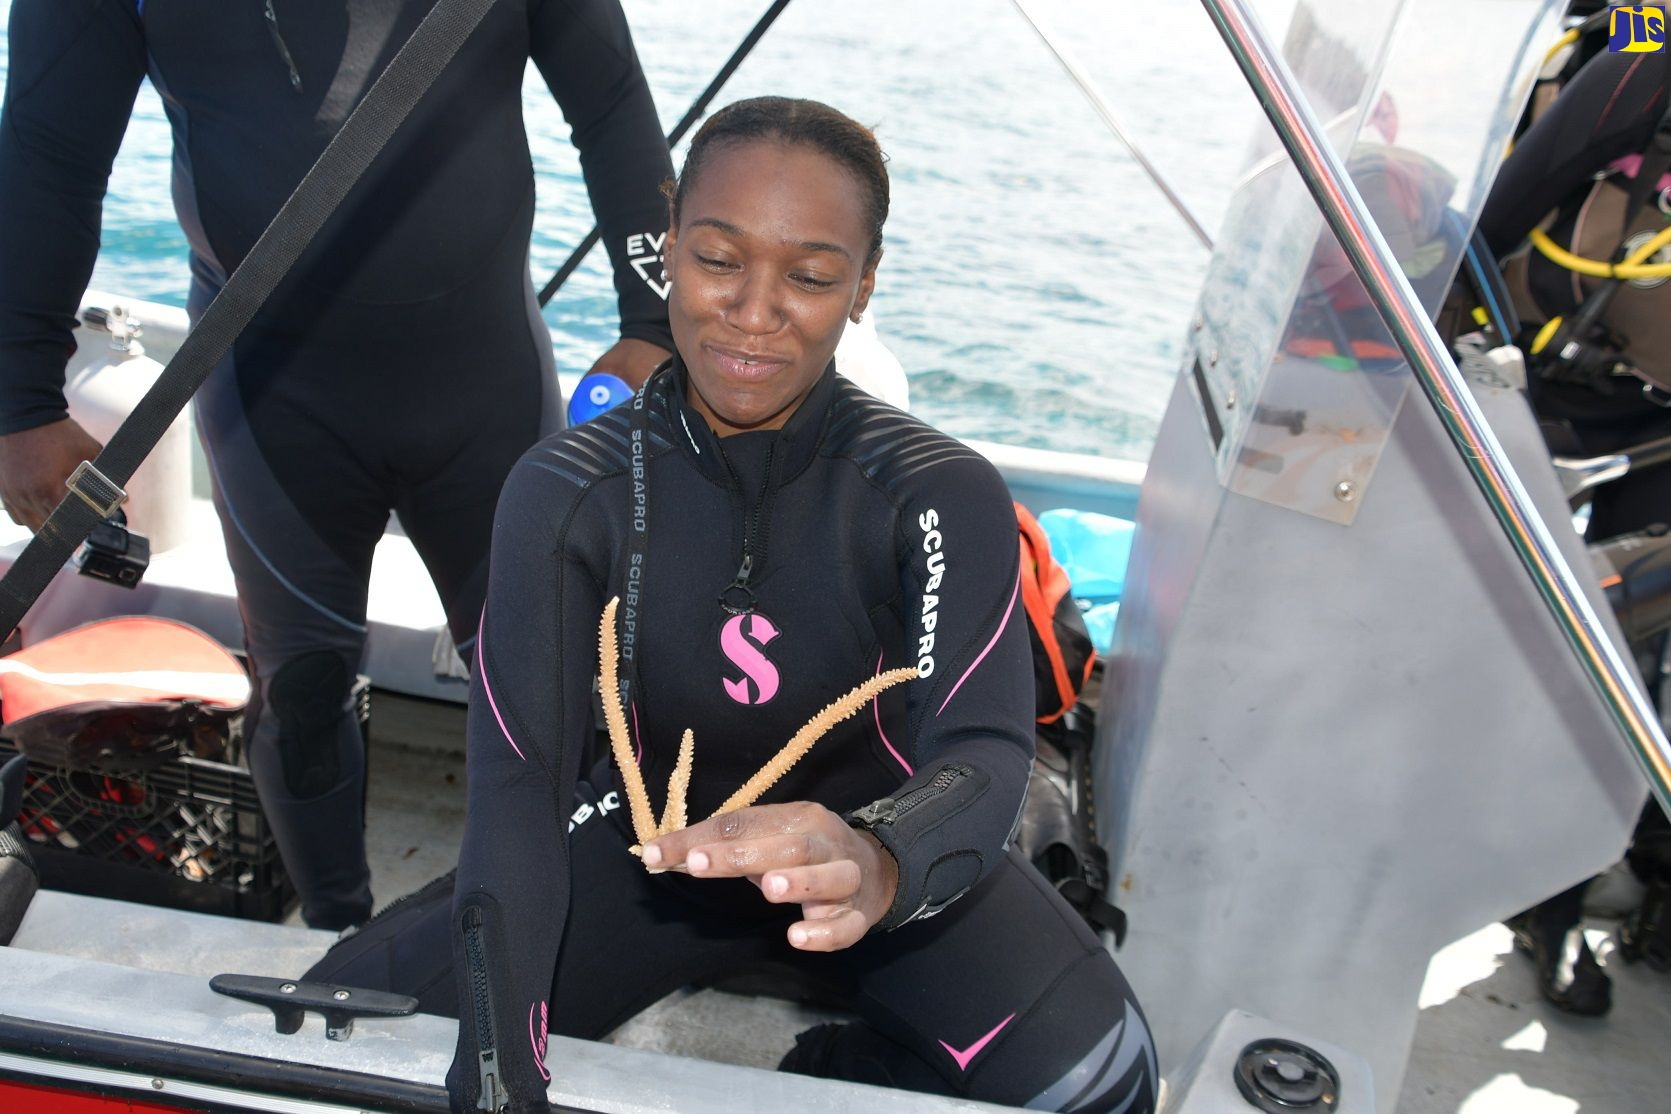 Project Manager, Integrating Water, Land and Ecosystems Management in Caribbean Small Island Developing States (IWEco) Jamaica, Loureene Jones displays coral pieces during a coral out-planting exercise at the Orange Bay Fish Sanctuary in Hanover on September 25.